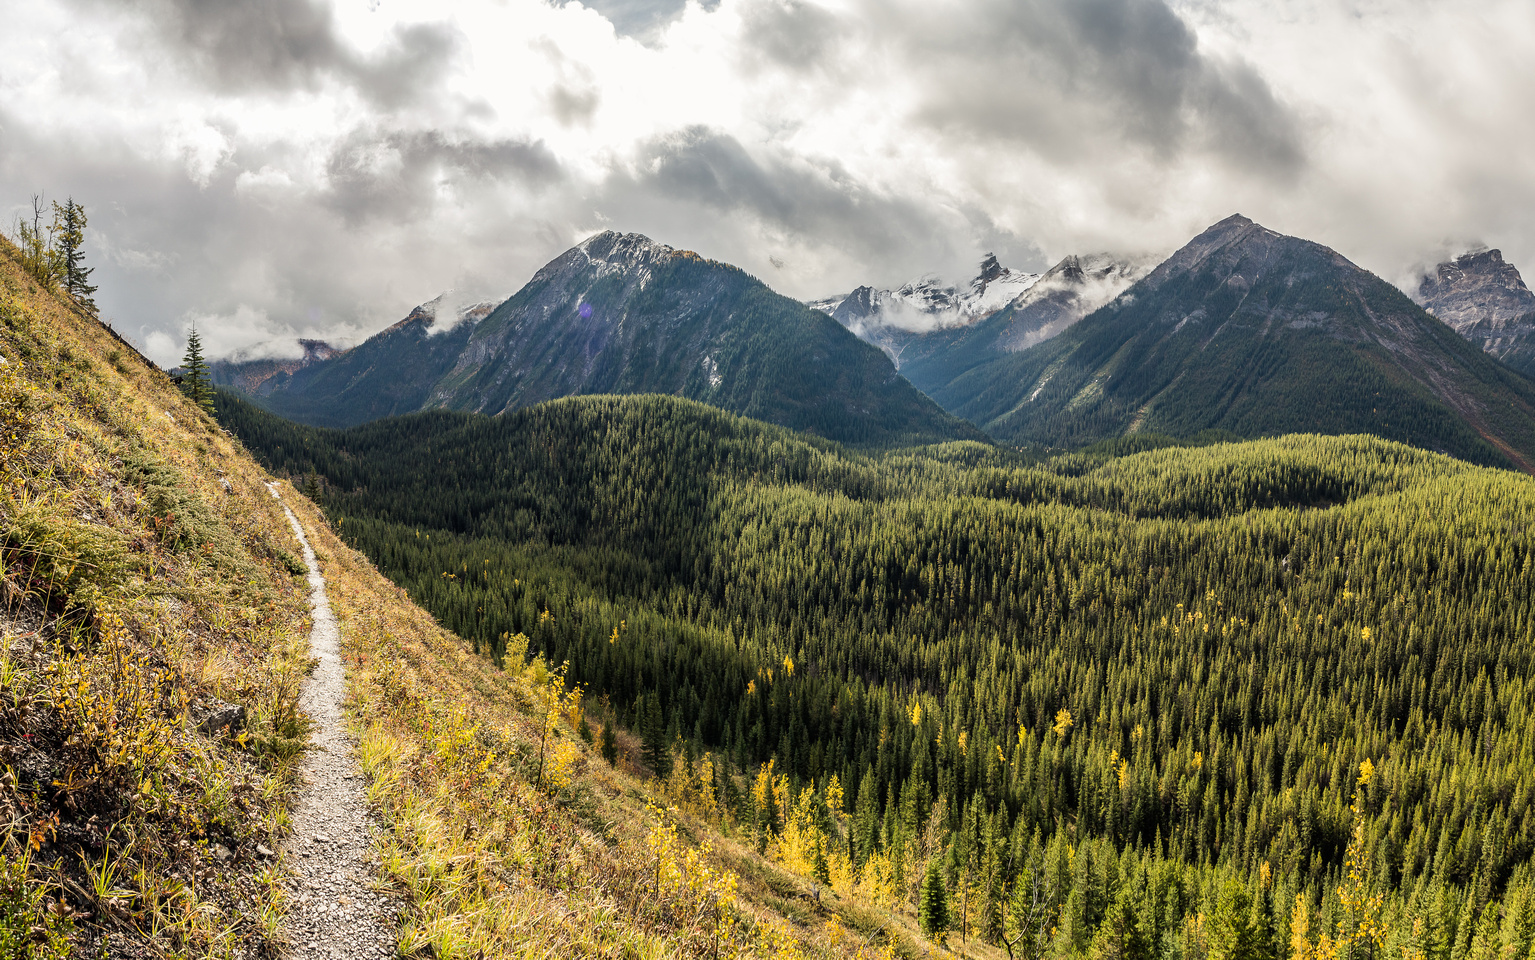 One of the highlights of the Sunshine approach is this section of about 1-2km where the trail cuts across a very steep, grassy slope high above the Simpson River (R) along the SW slopes of Golden Moun